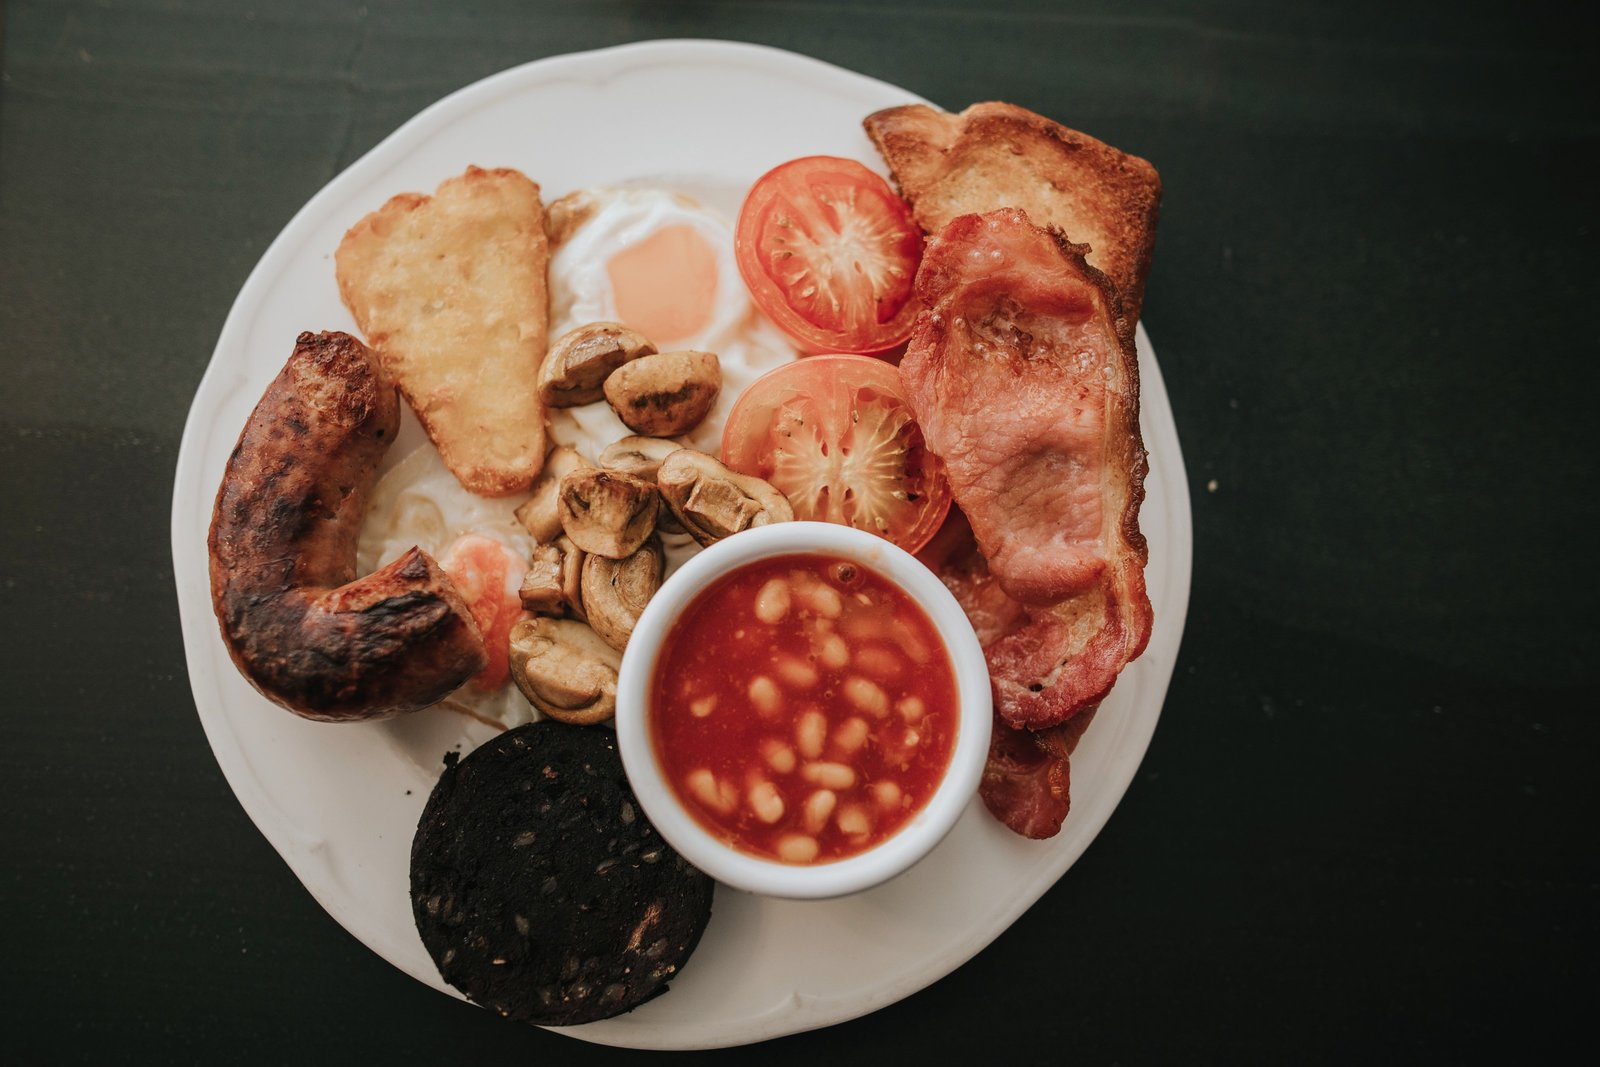 Traditional Full English Cooked Breakfast available at Baldry's Tearoom in Grasmere Village, The Lake District